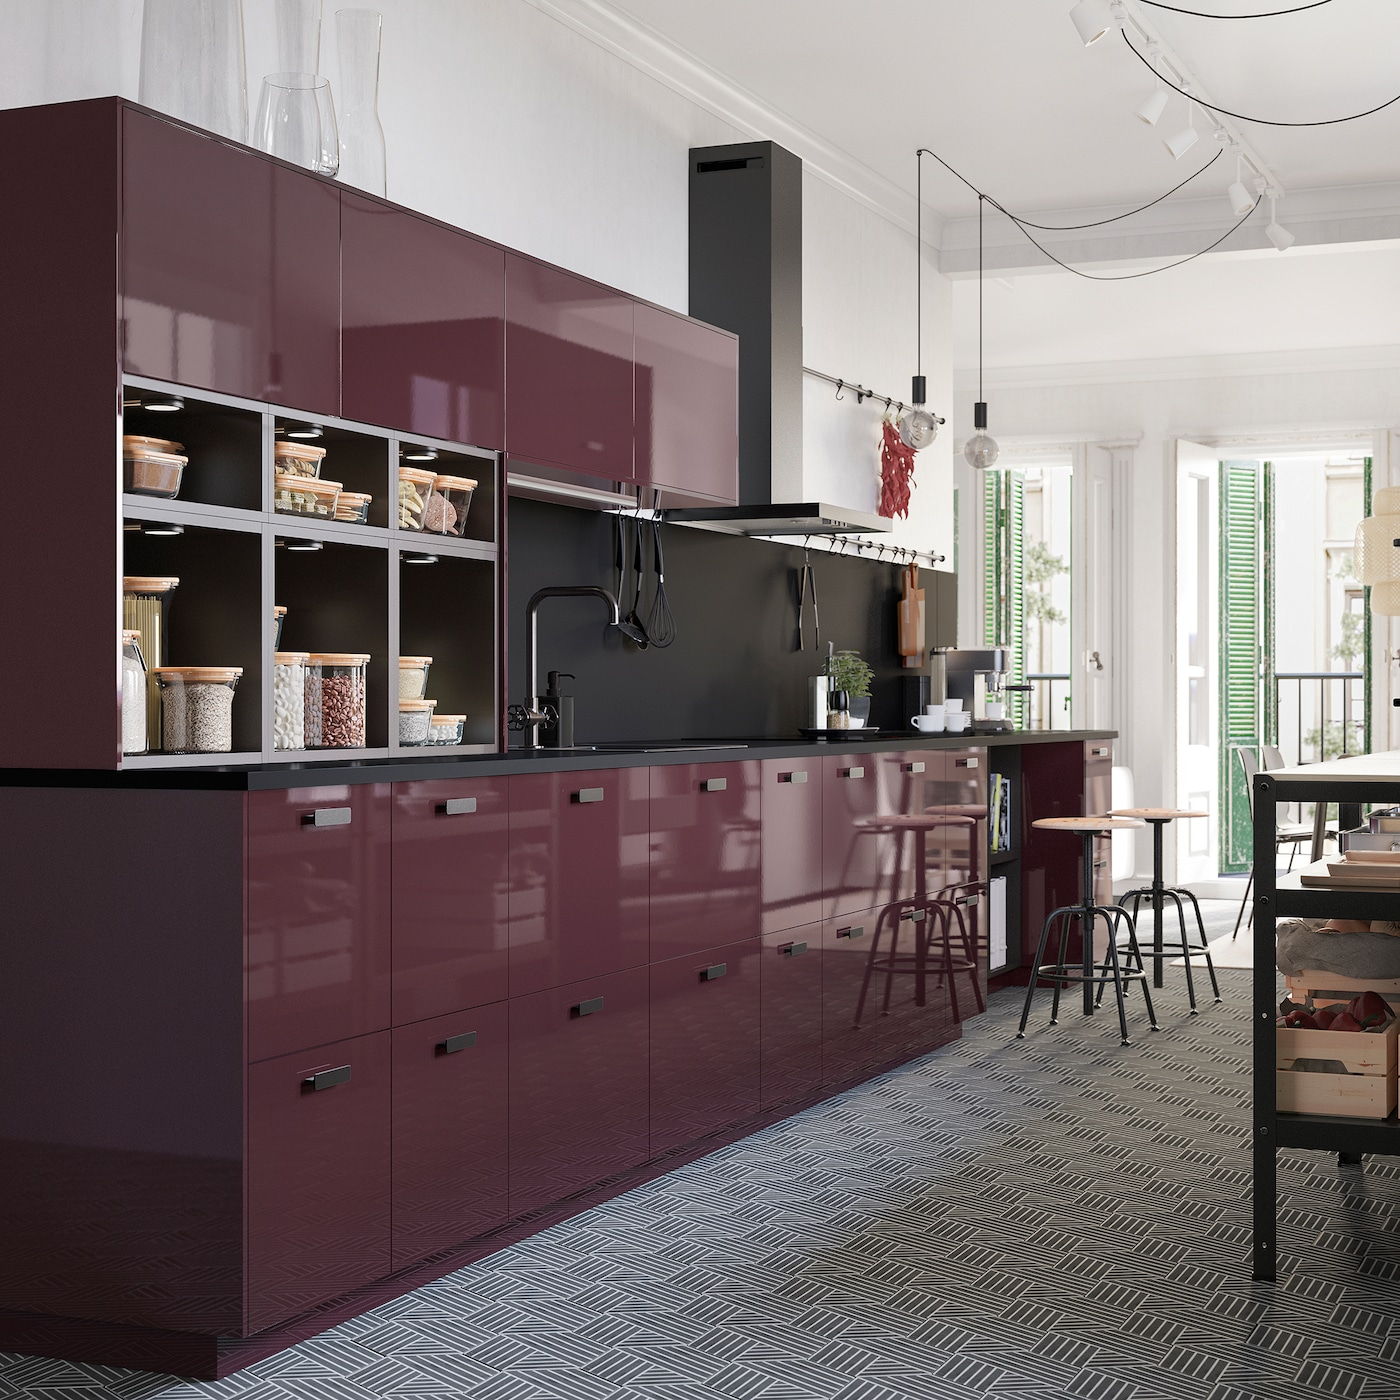 A high-gloss kitchen in dark red-brown, a hexagon-patterned floor and naked light bulbs on cords that hang from the ceiling.